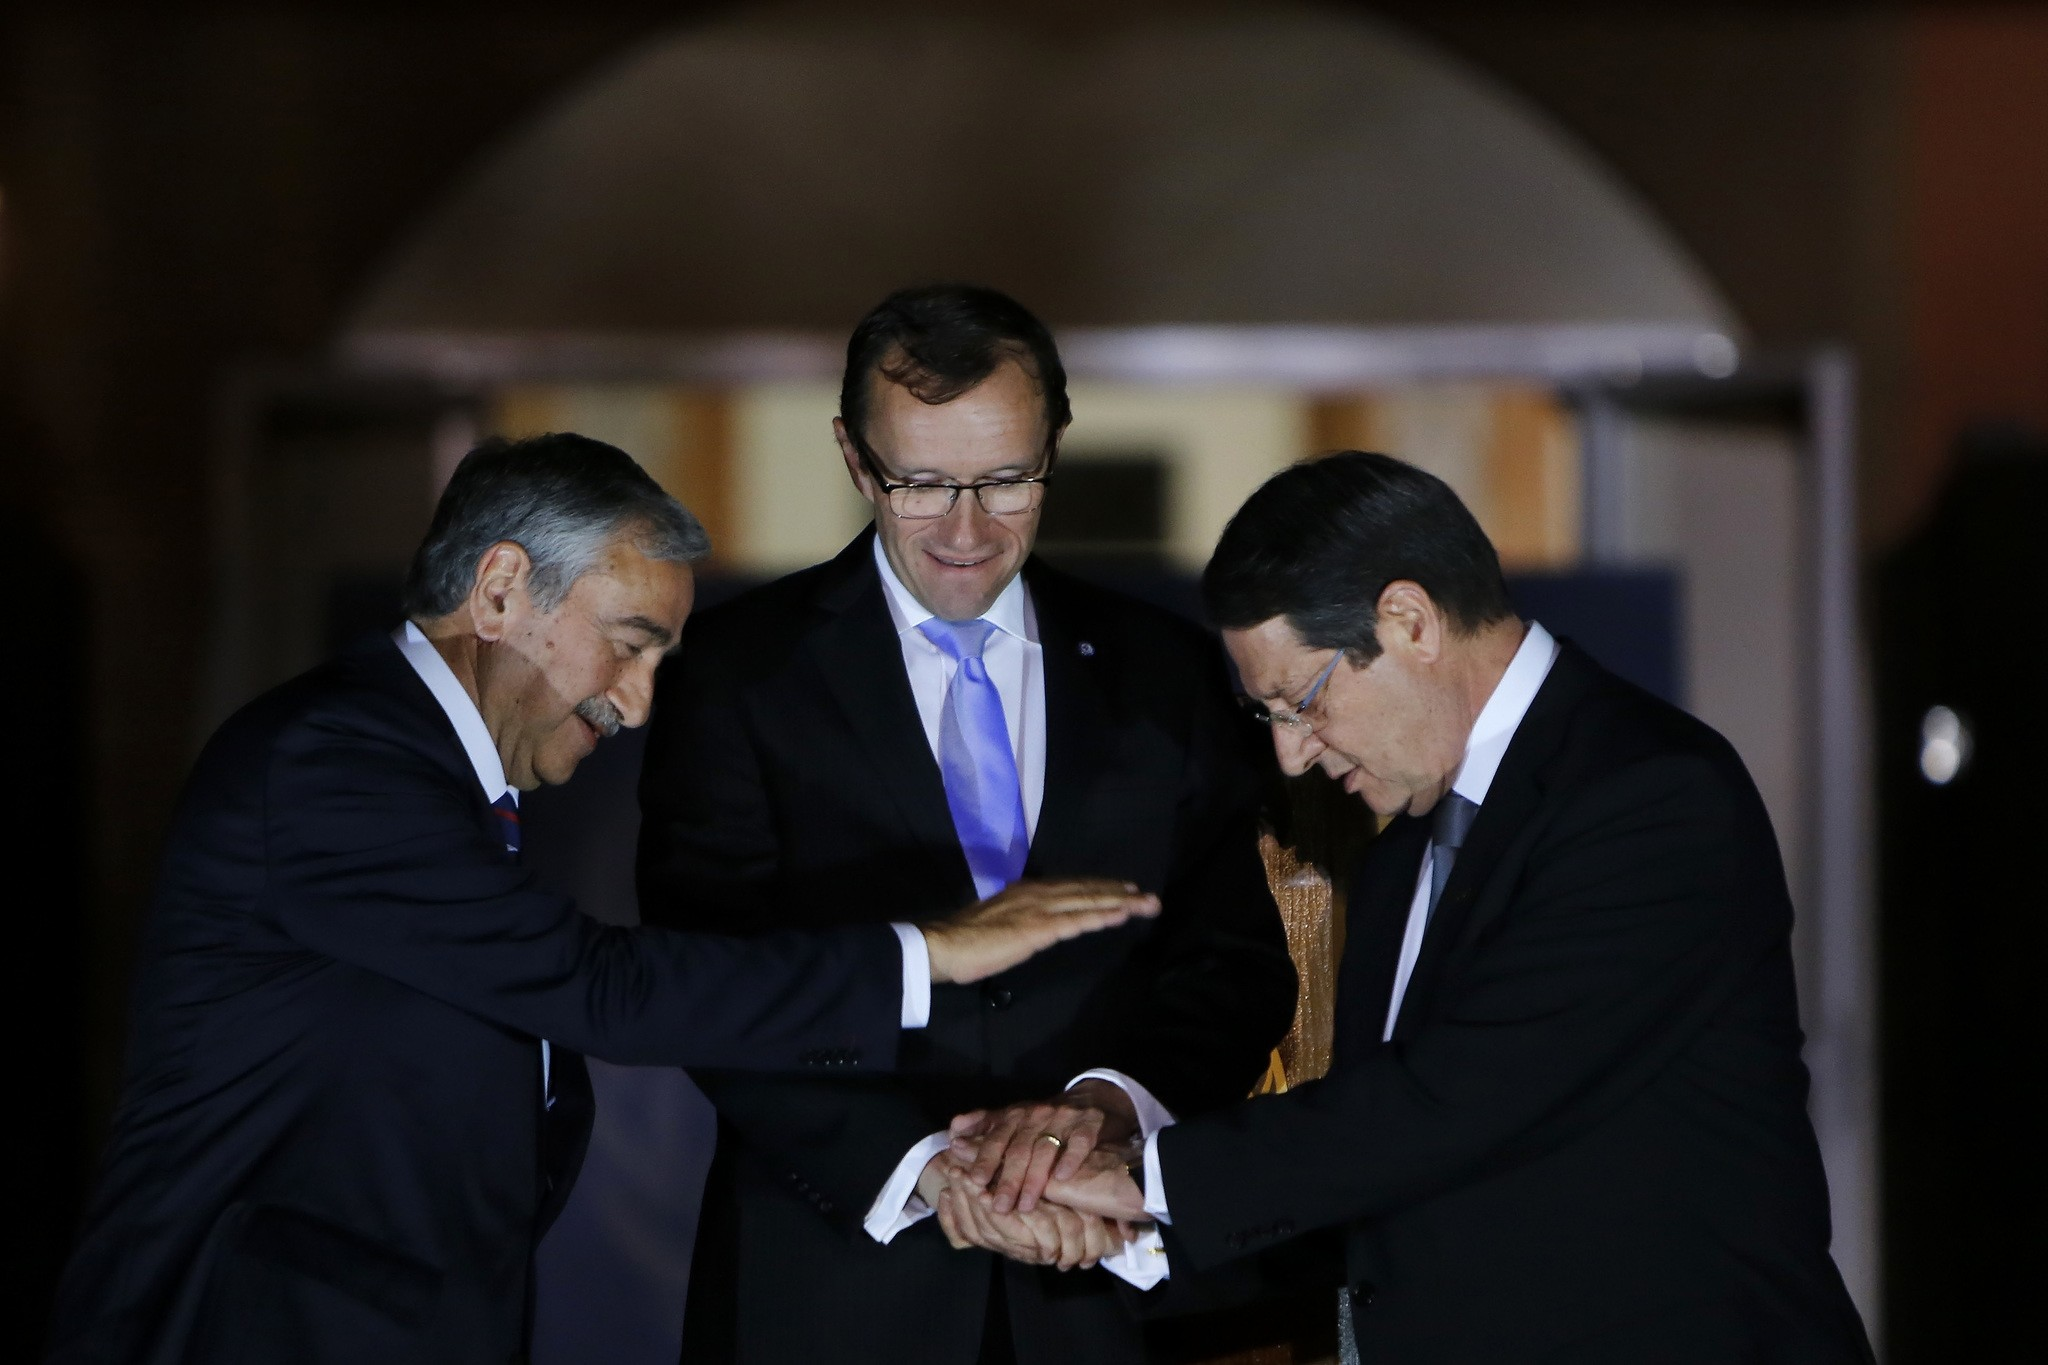 Cyprus' president Nicos Anastasiades, right, Turkish Cypriot leader Mustafa Akinci, left, and United Nations envoy Espen Barth Eide shake hands after a dinner at the Ledra Palace Hotel inside the UN controlled buffer zone. (AP Photo)